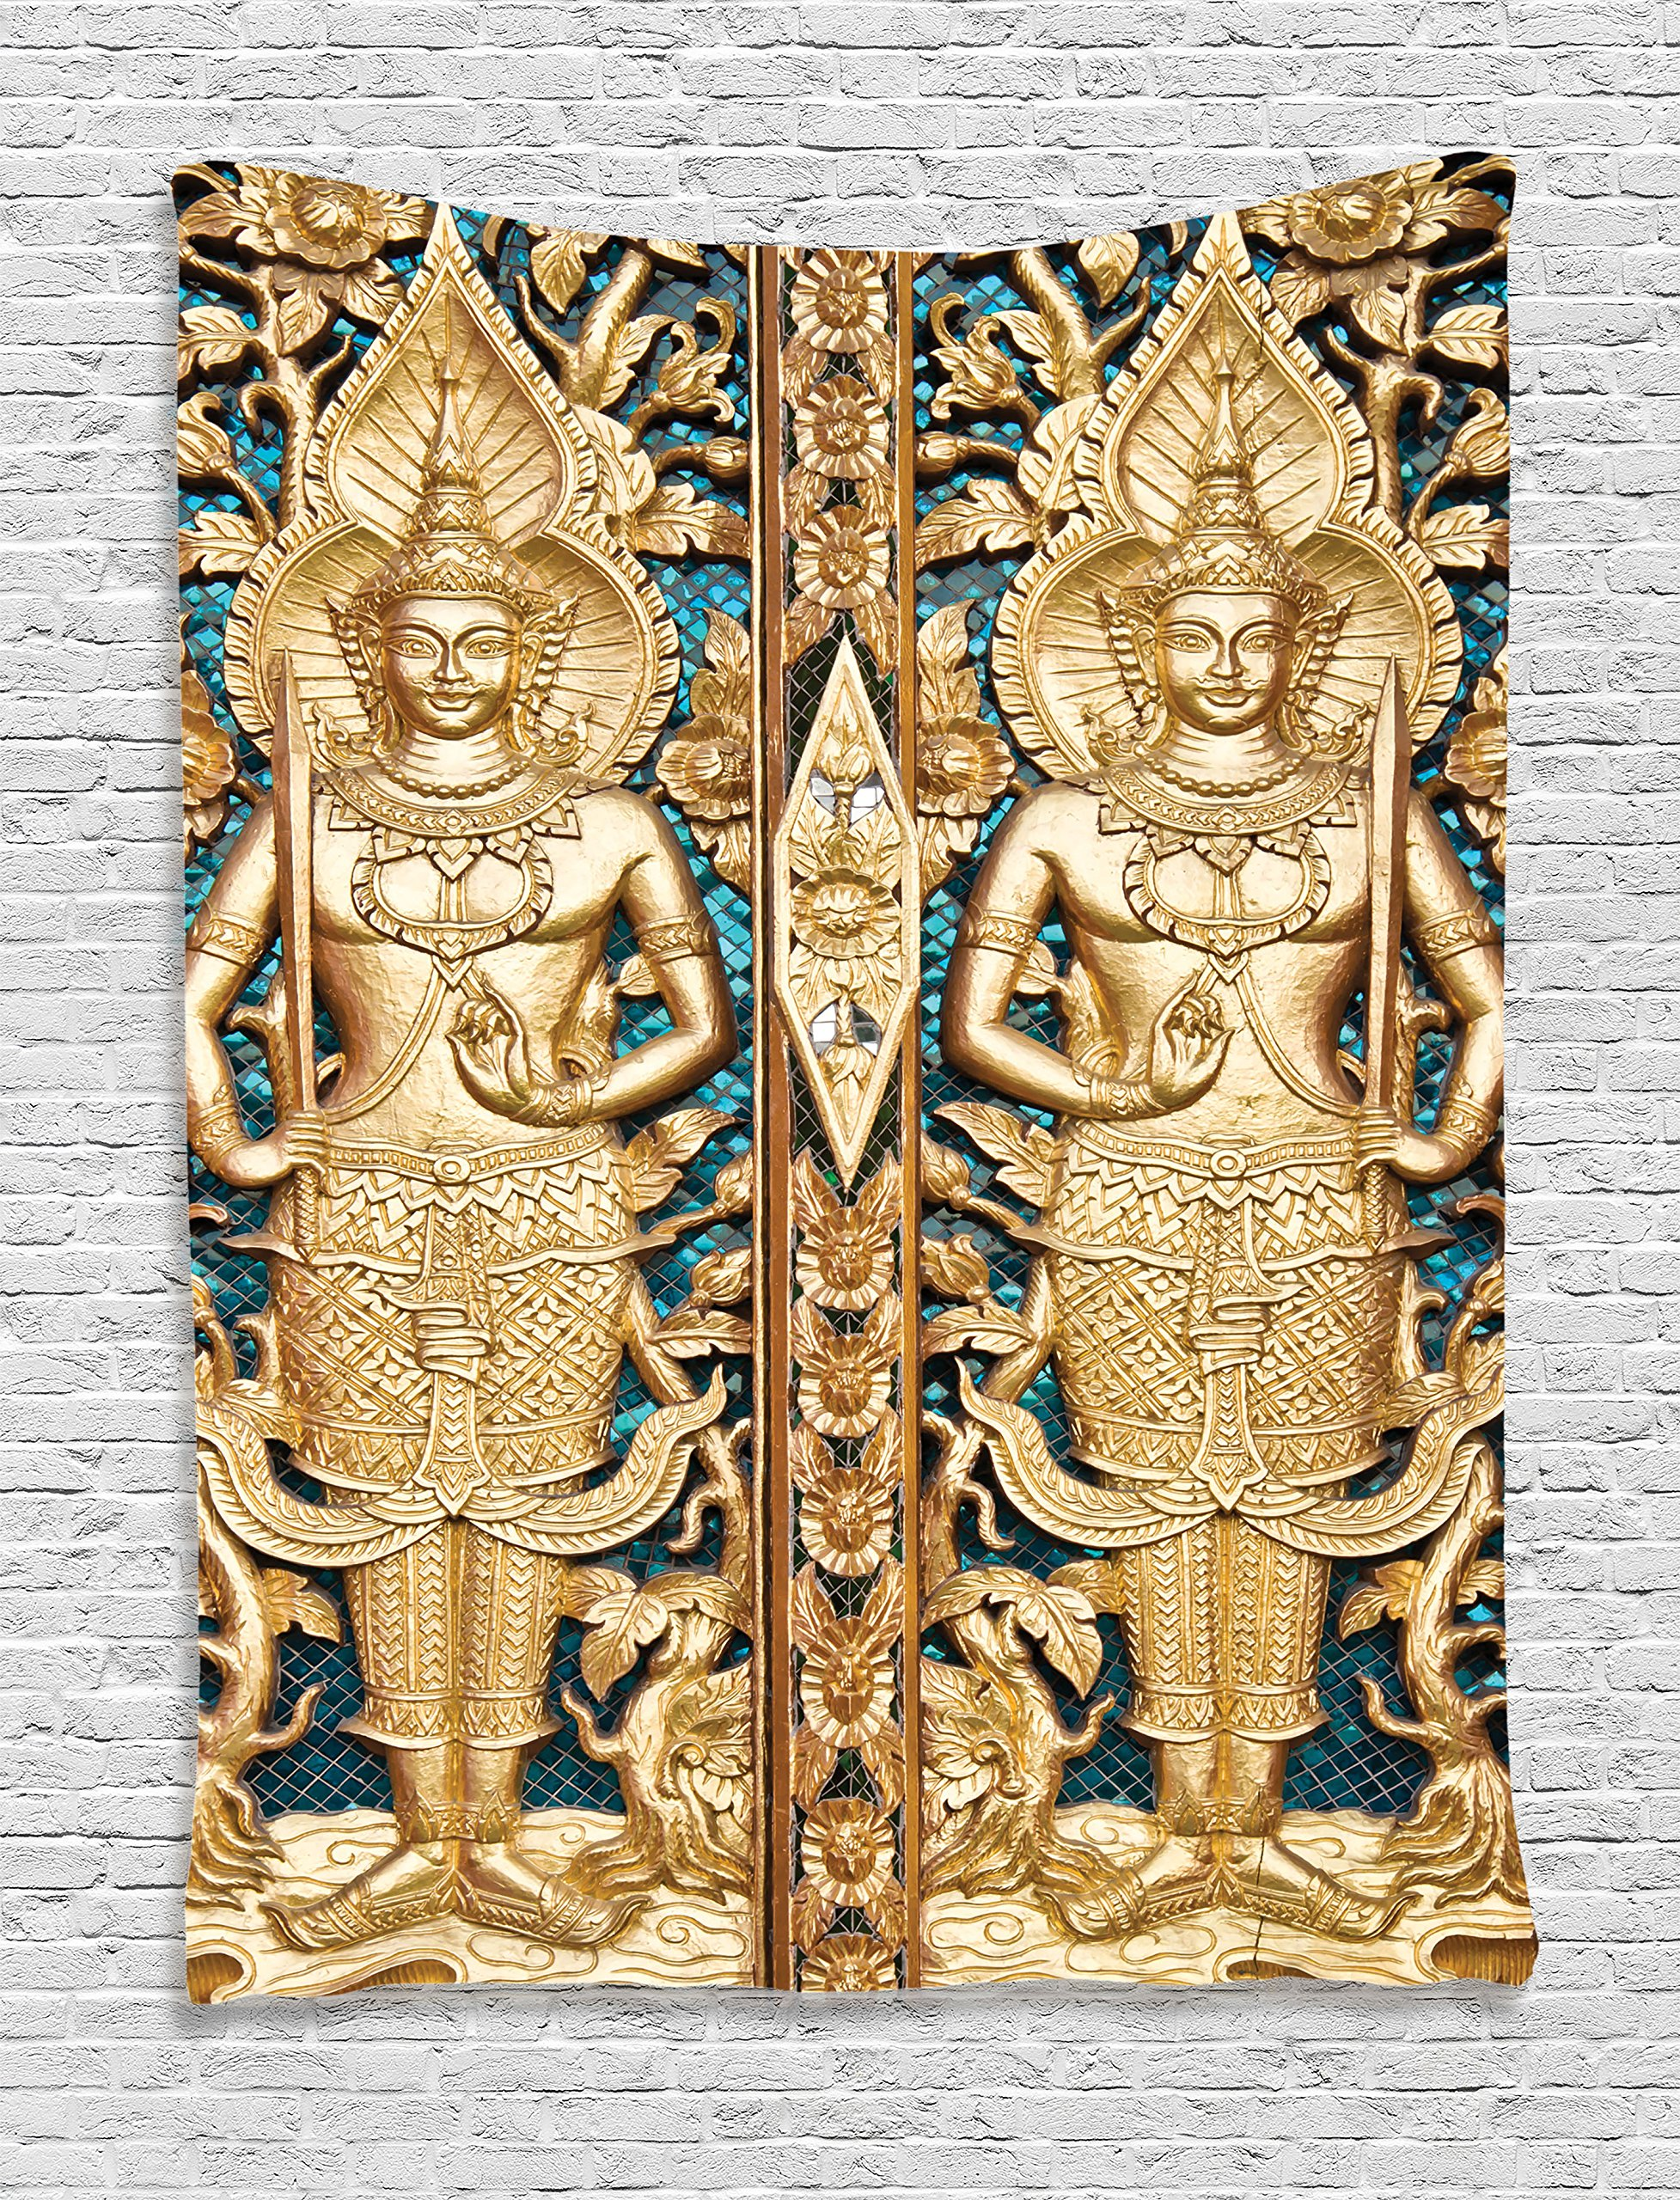 Ambesonne Rustic Decor Collection, Thai Gate at Wat Sirisa Tong Thailand Buddhism Architecture History Spiritual Picture, Bedroom Living Room Dorm Wall Hanging Tapestry, Golden Teal by Ambesonne